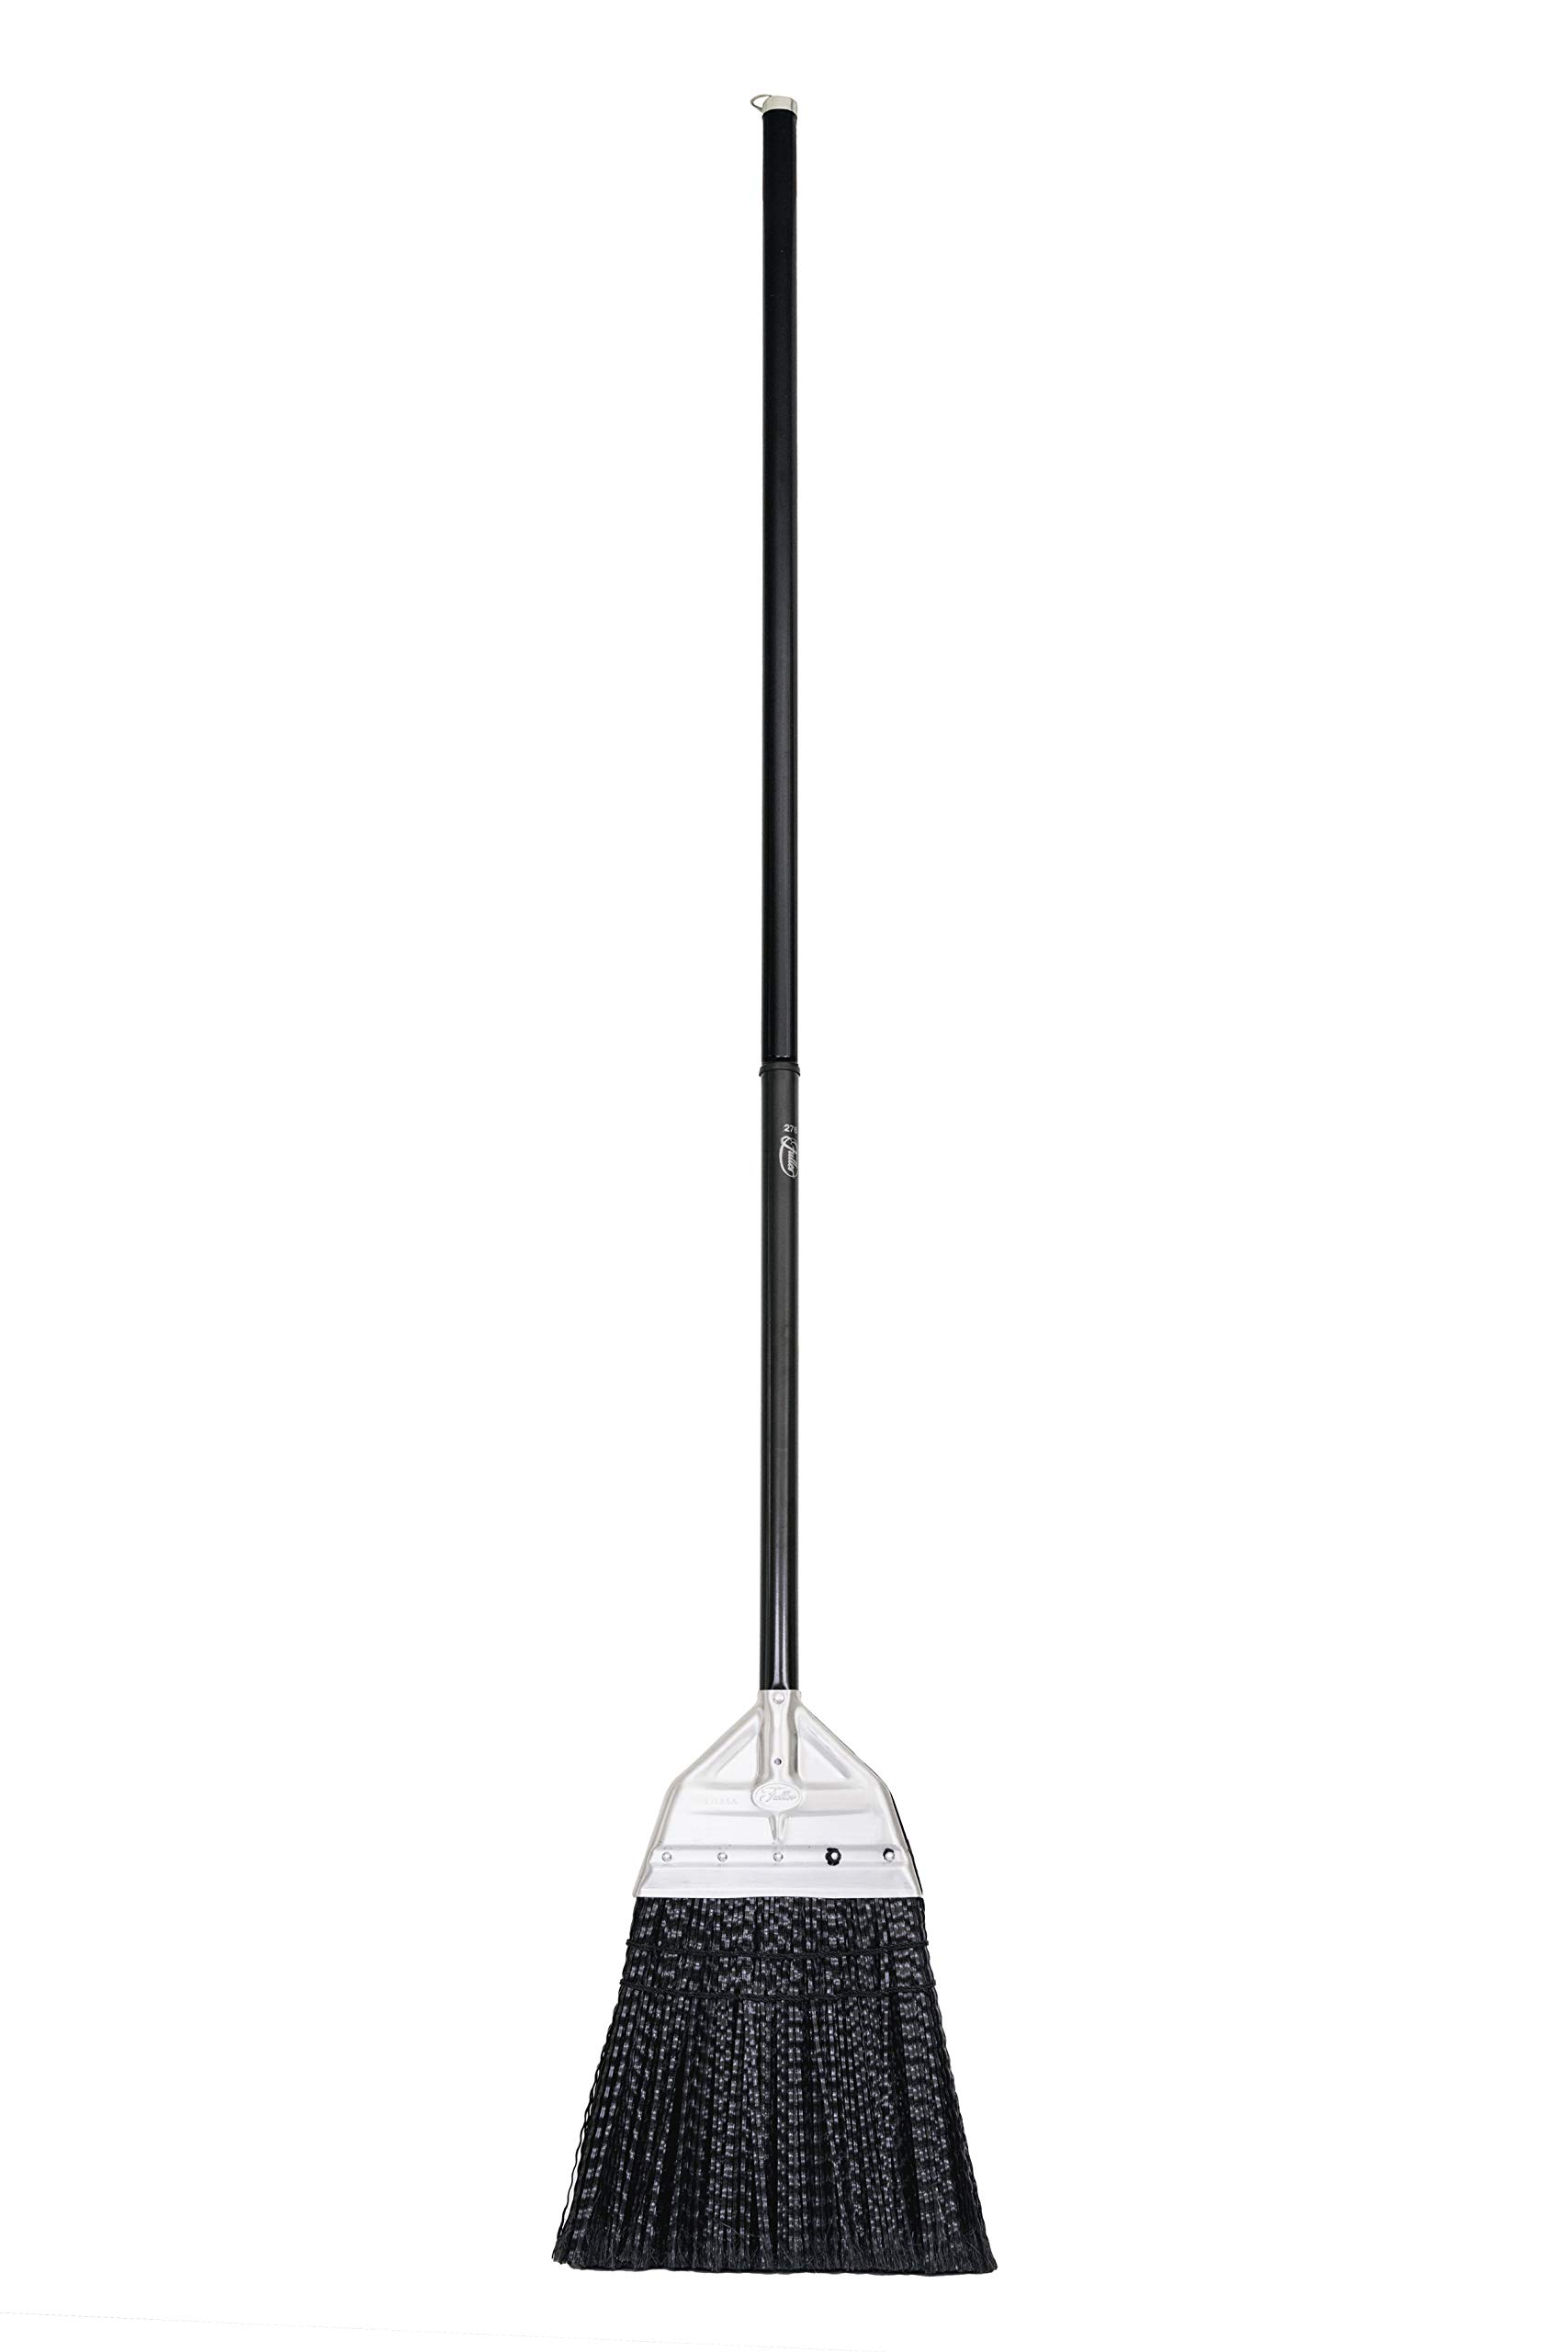 Fuller Brush Broom - Premium Grade Heavy Duty Straight Surface Sweeper w/ Chemical & Grease Proof Bristles For Sweeping All Floor Types Indoor & Outdoor by Fuller Brush (Image #1)